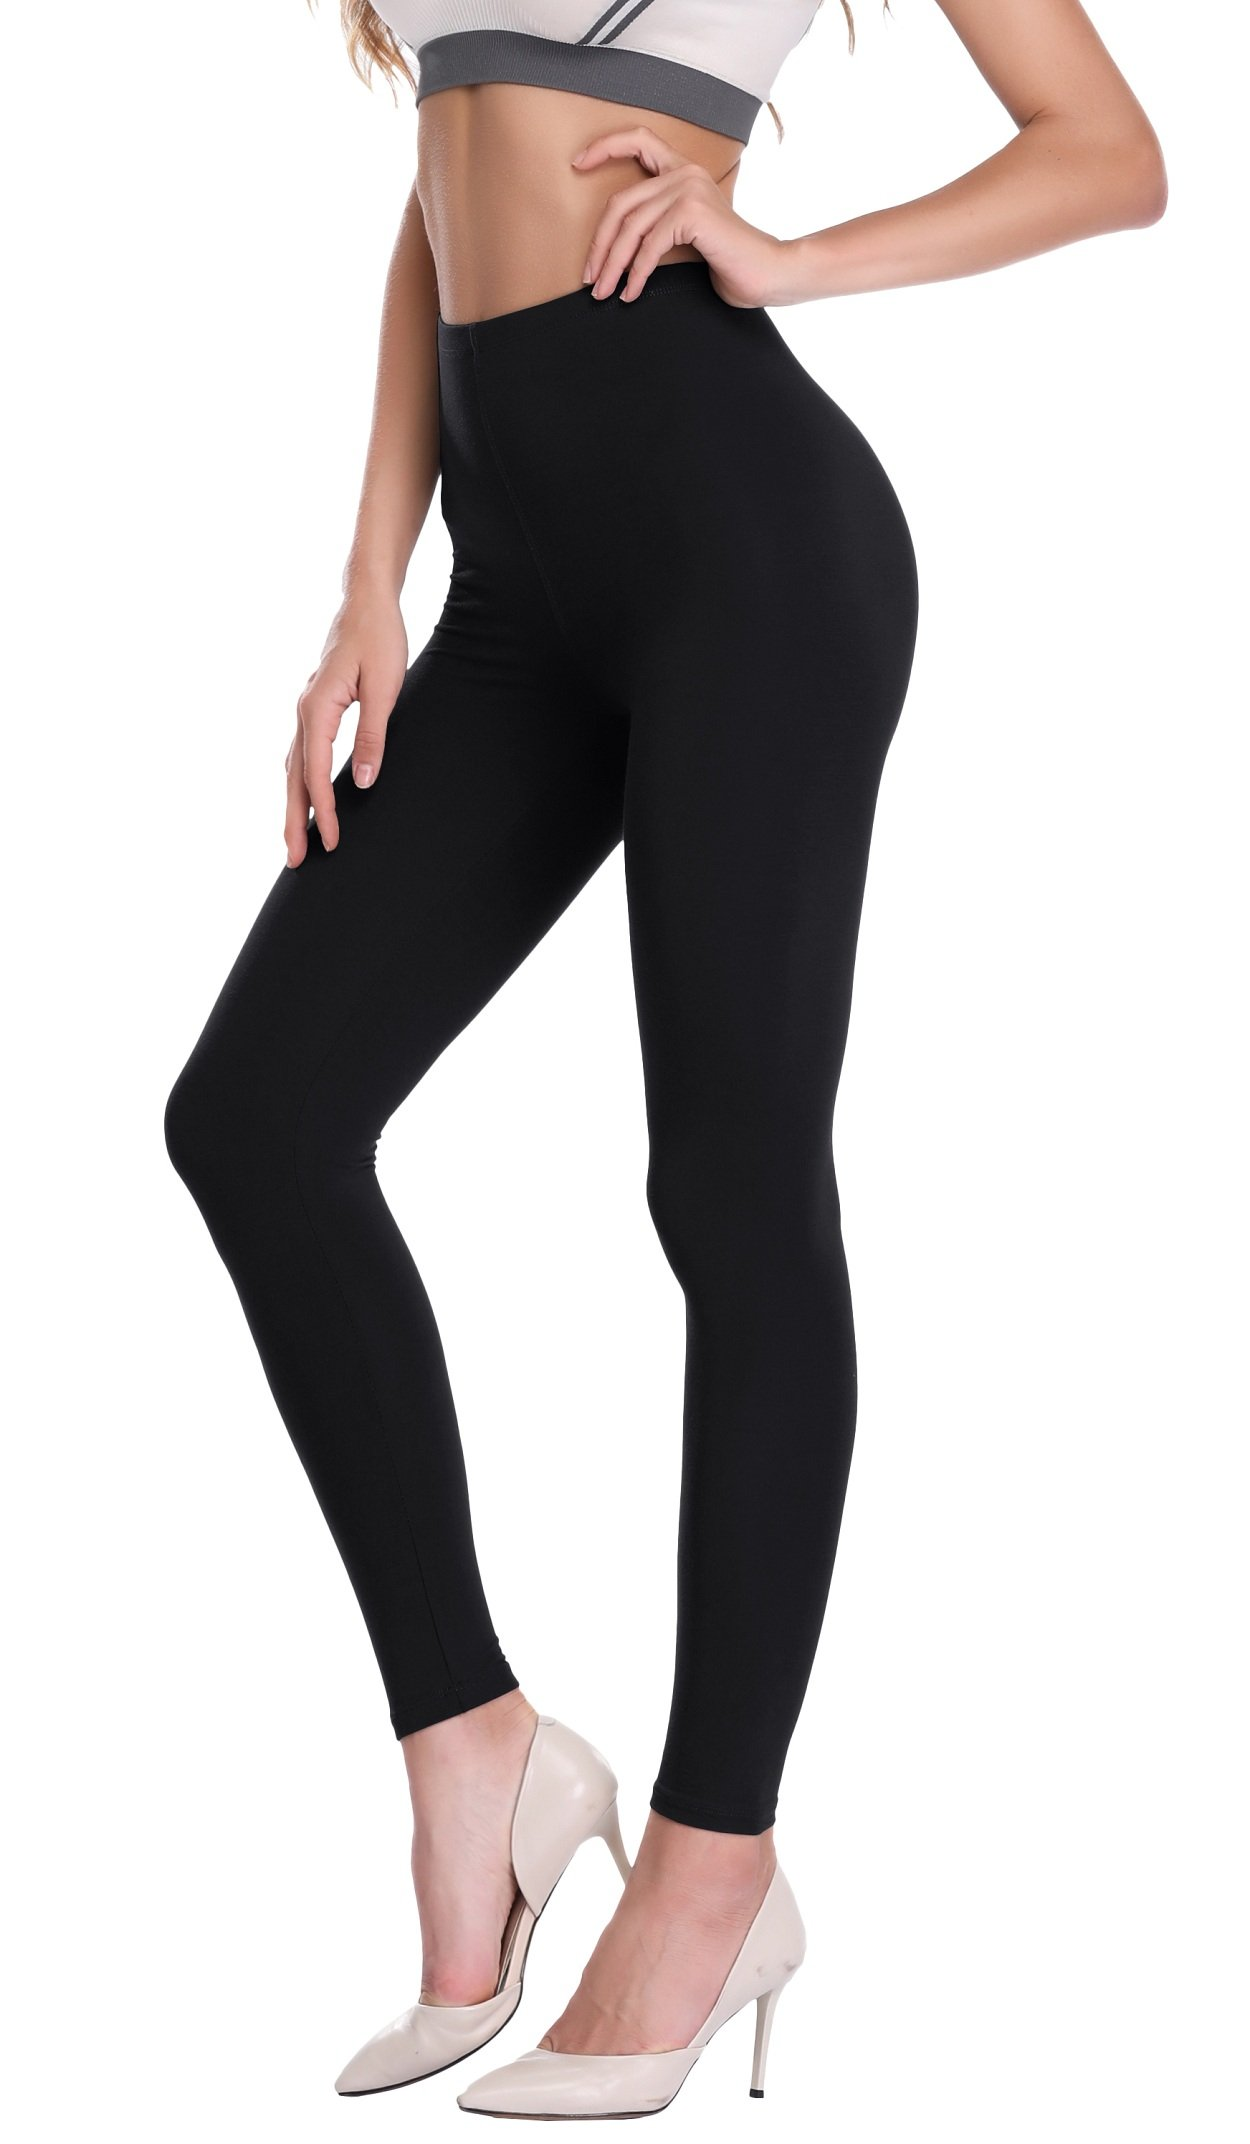 PENGEE Women's Extra Soft Ankle Length Leggings Modal Full Length Pants with High Waist